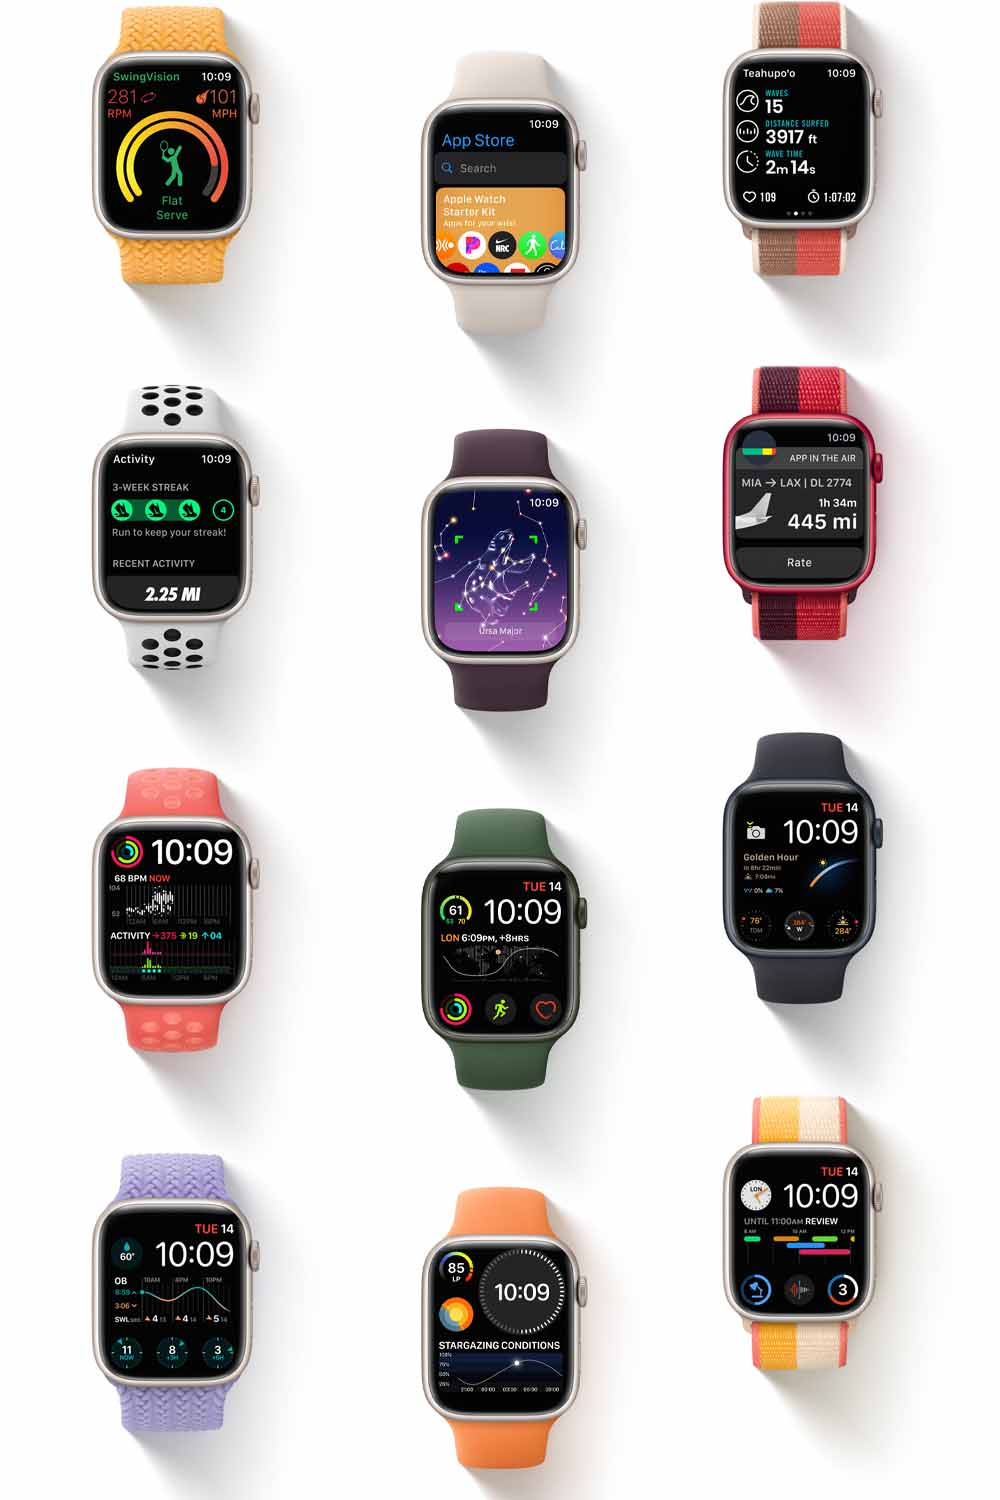 Apple Watch Series 7 has a bigger display in the same body, coming this Fall for $399